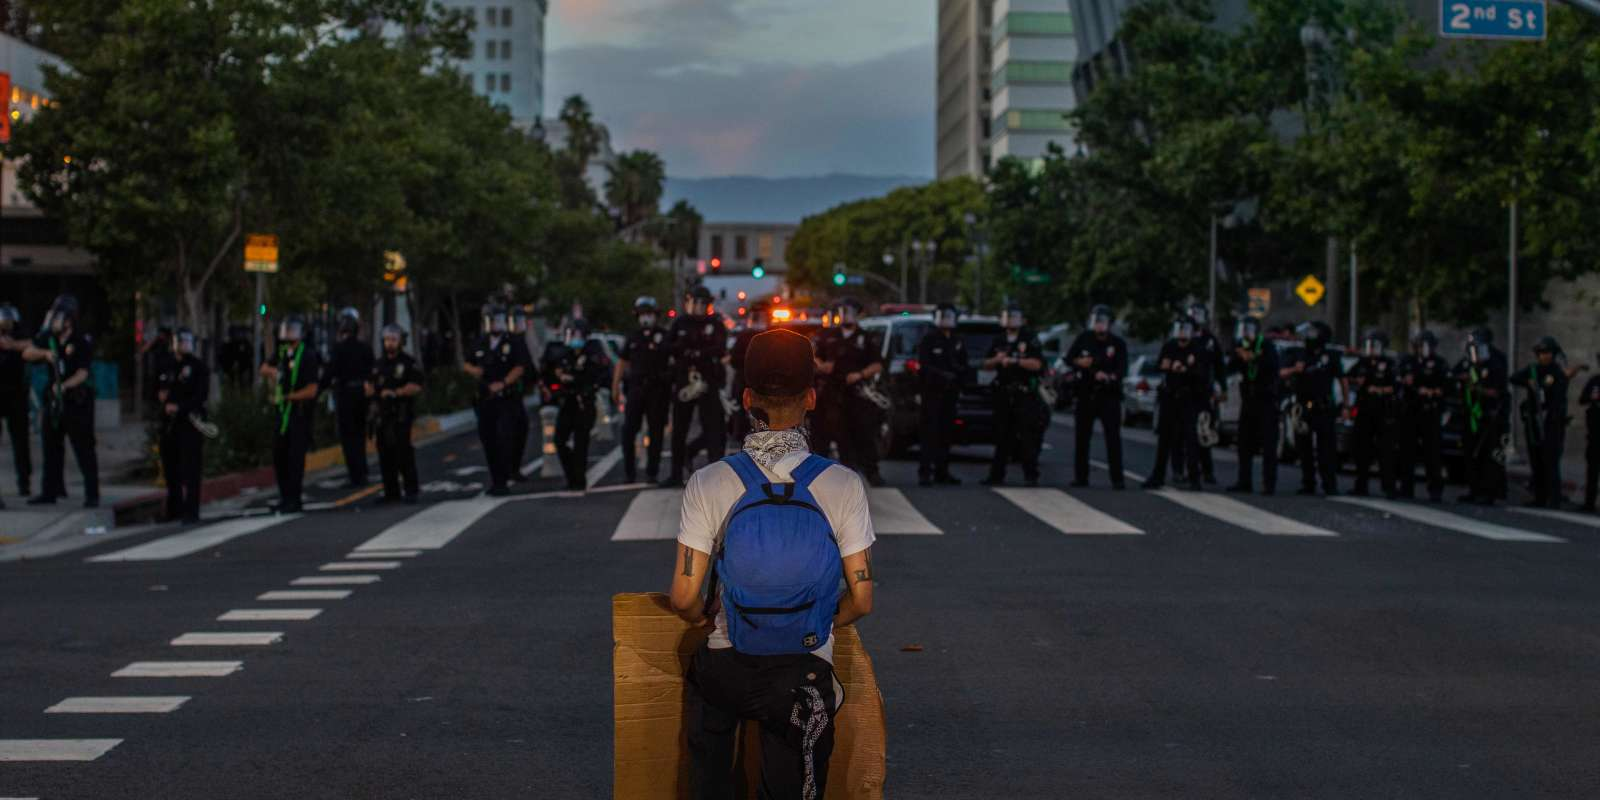 TOPSHOT - A demonstrator kneels in front of a Police line in Downtown Los Angeles on May 30, 2020 during a protest against the death of George Floyd, an unarmed black man who died while while being arrested and pinned to the ground by the knee of a Minneapolis police officer. Clashes broke out and major cities imposed curfews as America began another night of unrest Saturday with angry demonstrators ignoring warnings from President Donald Trump that his government would stop violent protests over police brutality